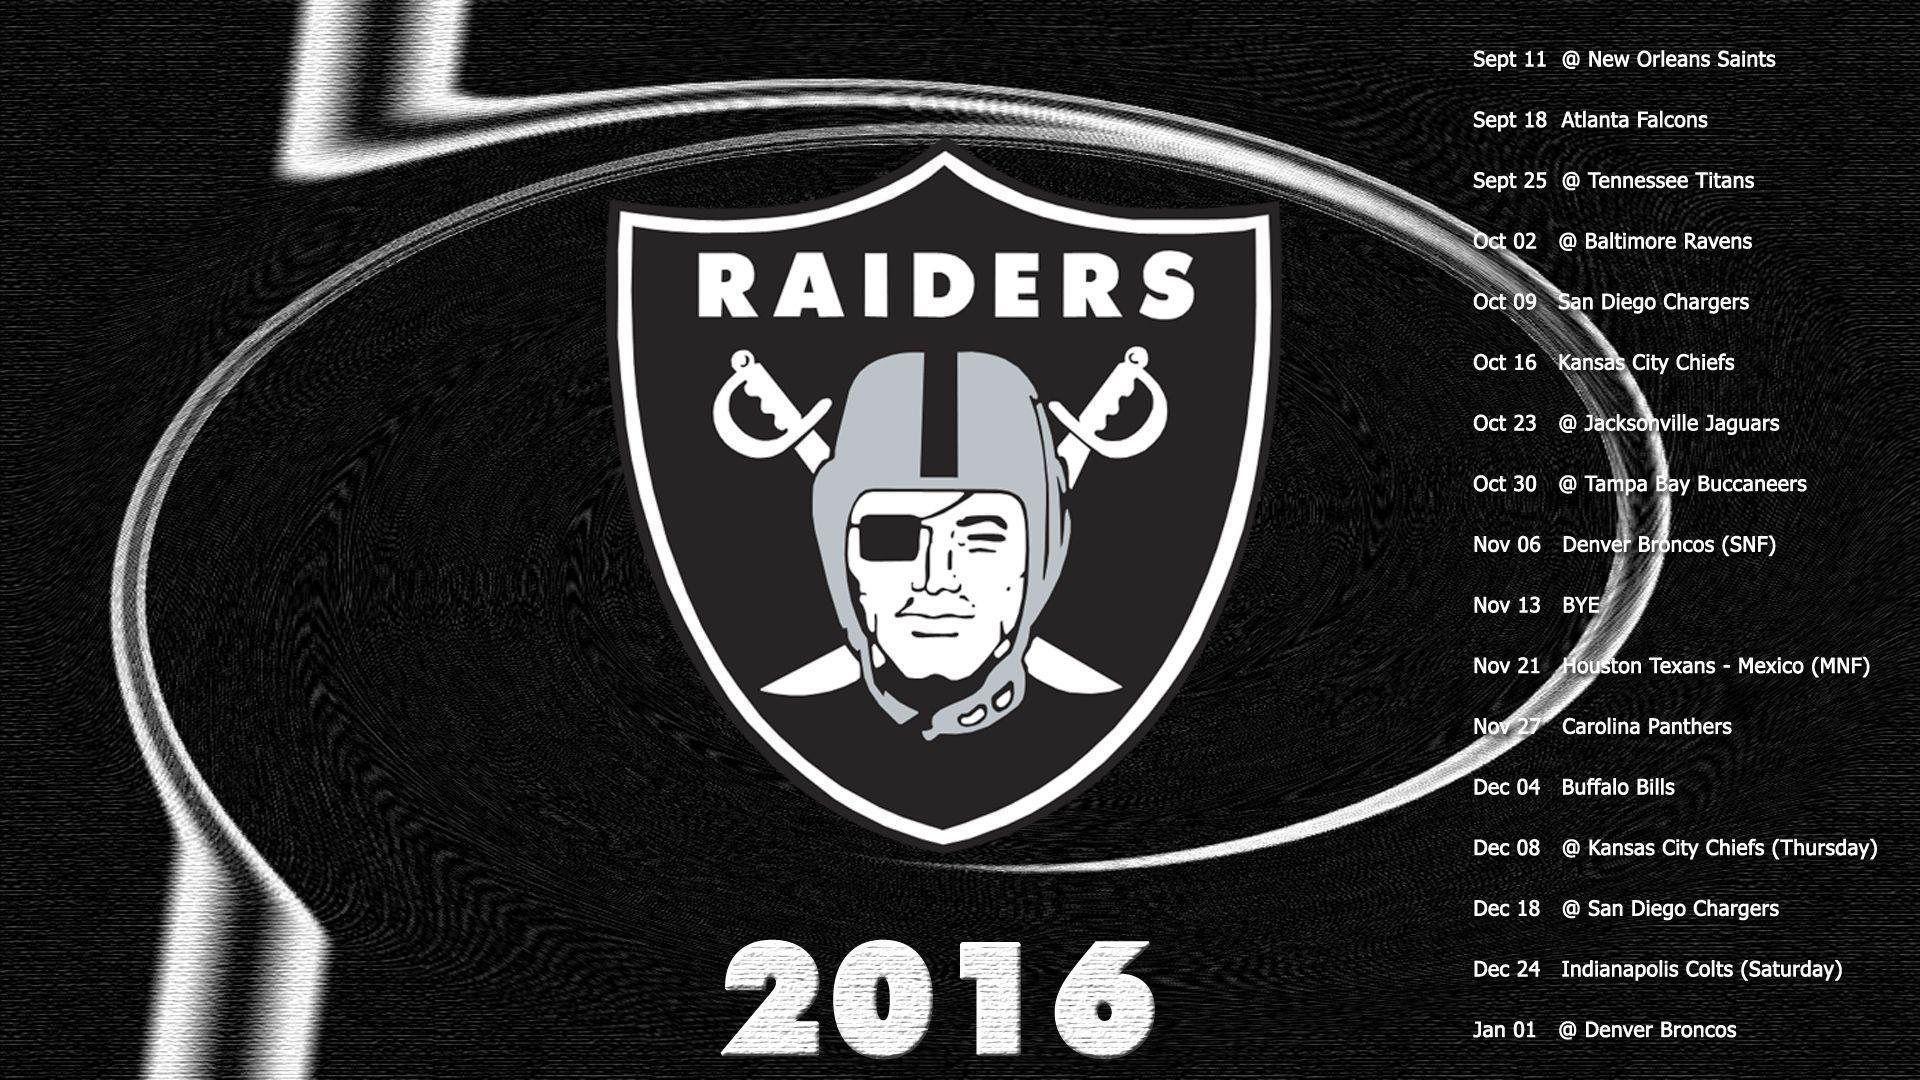 Oakland Raiders Wallpaper from RaidersLinks.com